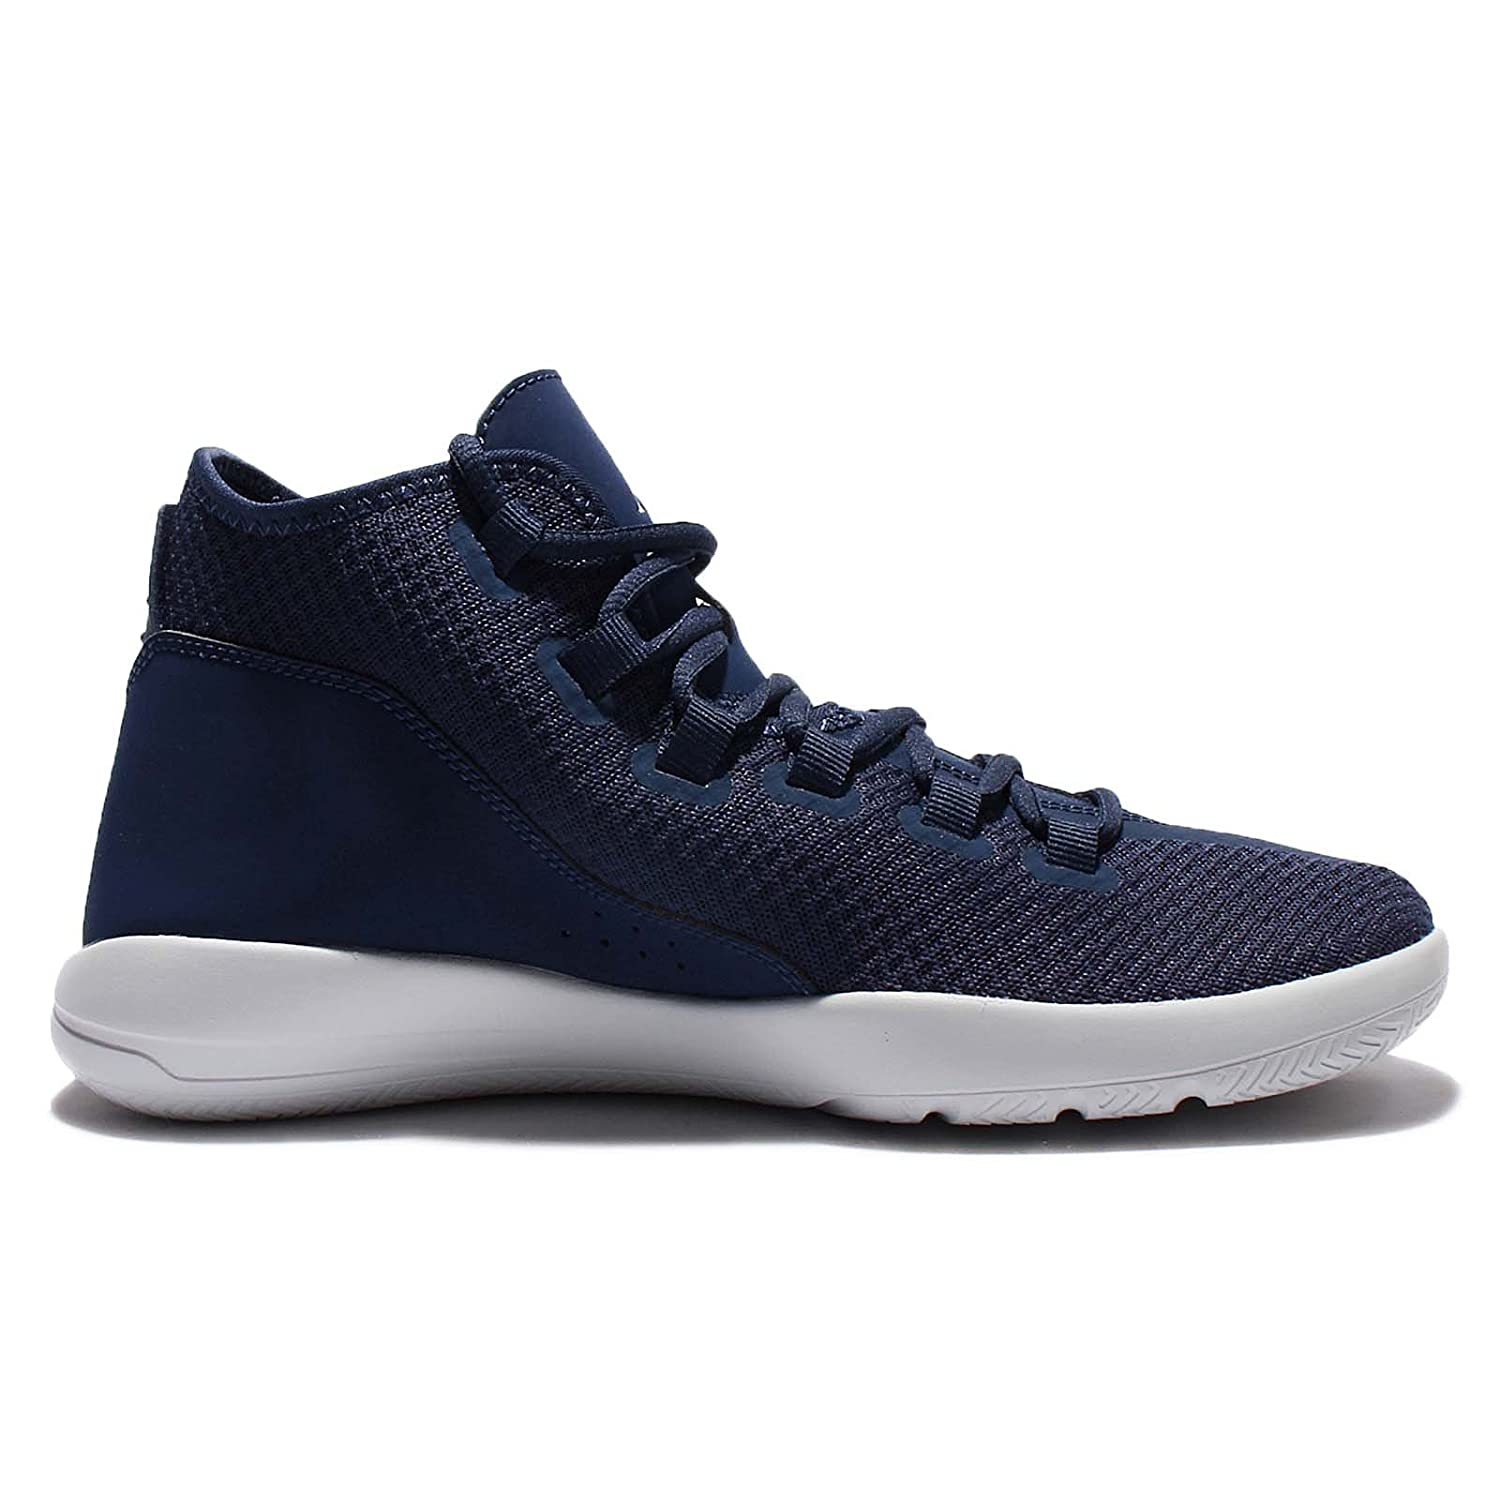 Gentlemen/Ladies Jordan Men's Reveal, Midnight Navy/Pure Platinum-Infrared 23 Guarantee Guarantee Guarantee quality and quantity First quality Full range of specifications BH13122 129301